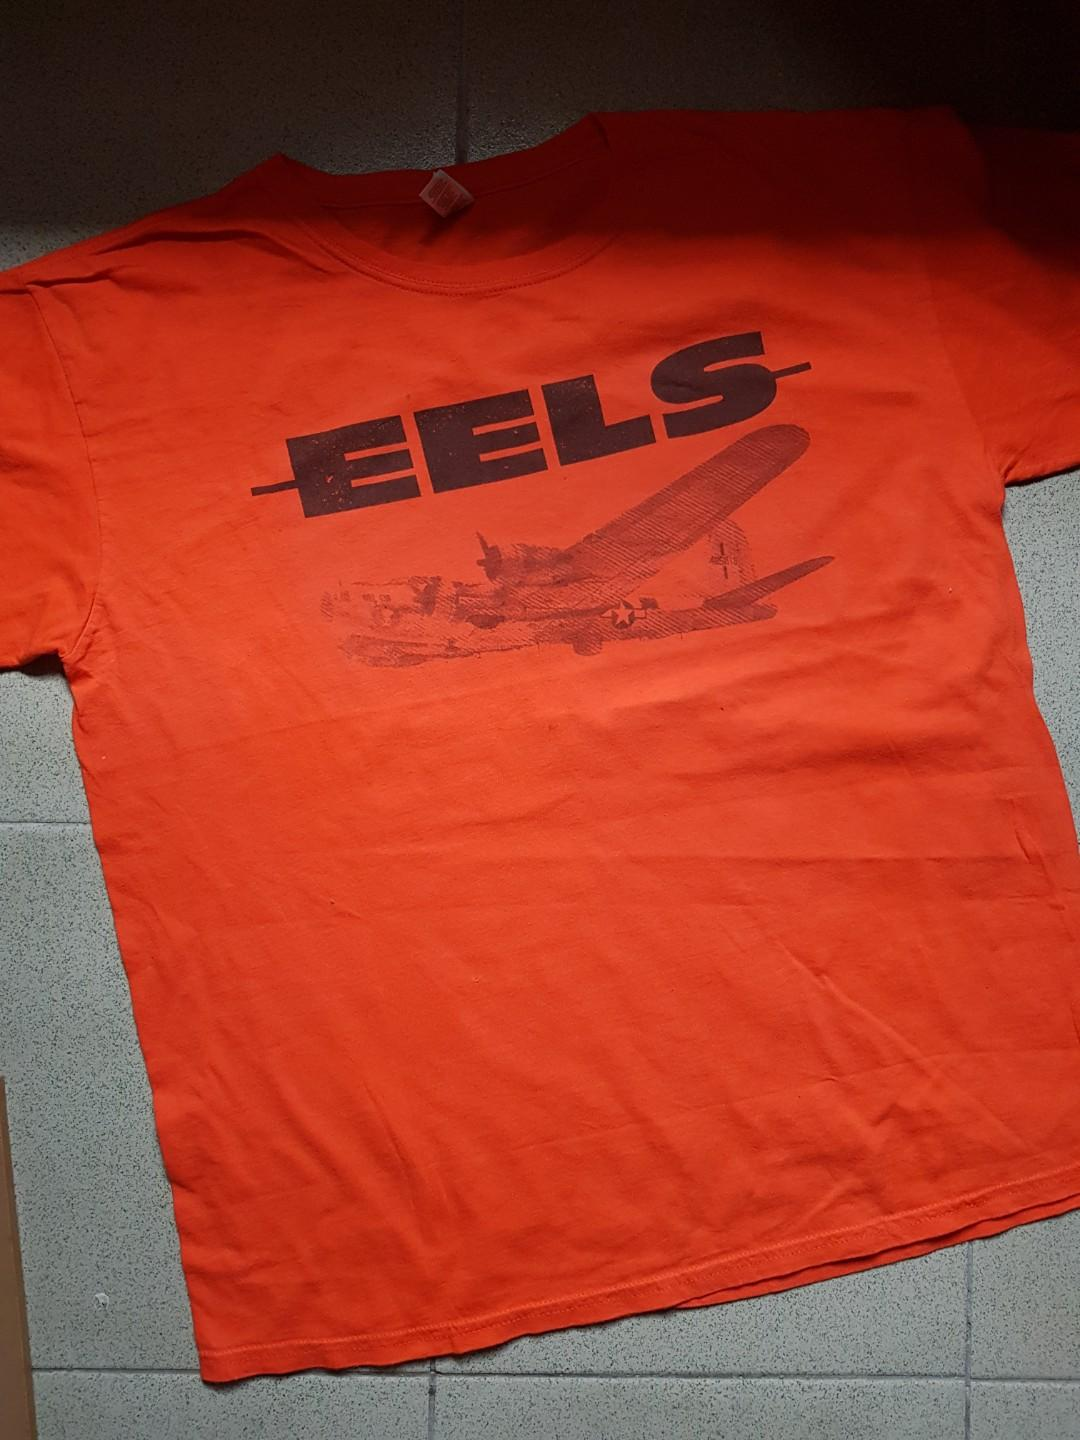 Eels Band Shirt Men S Fashion Clothes Tops On Carousell